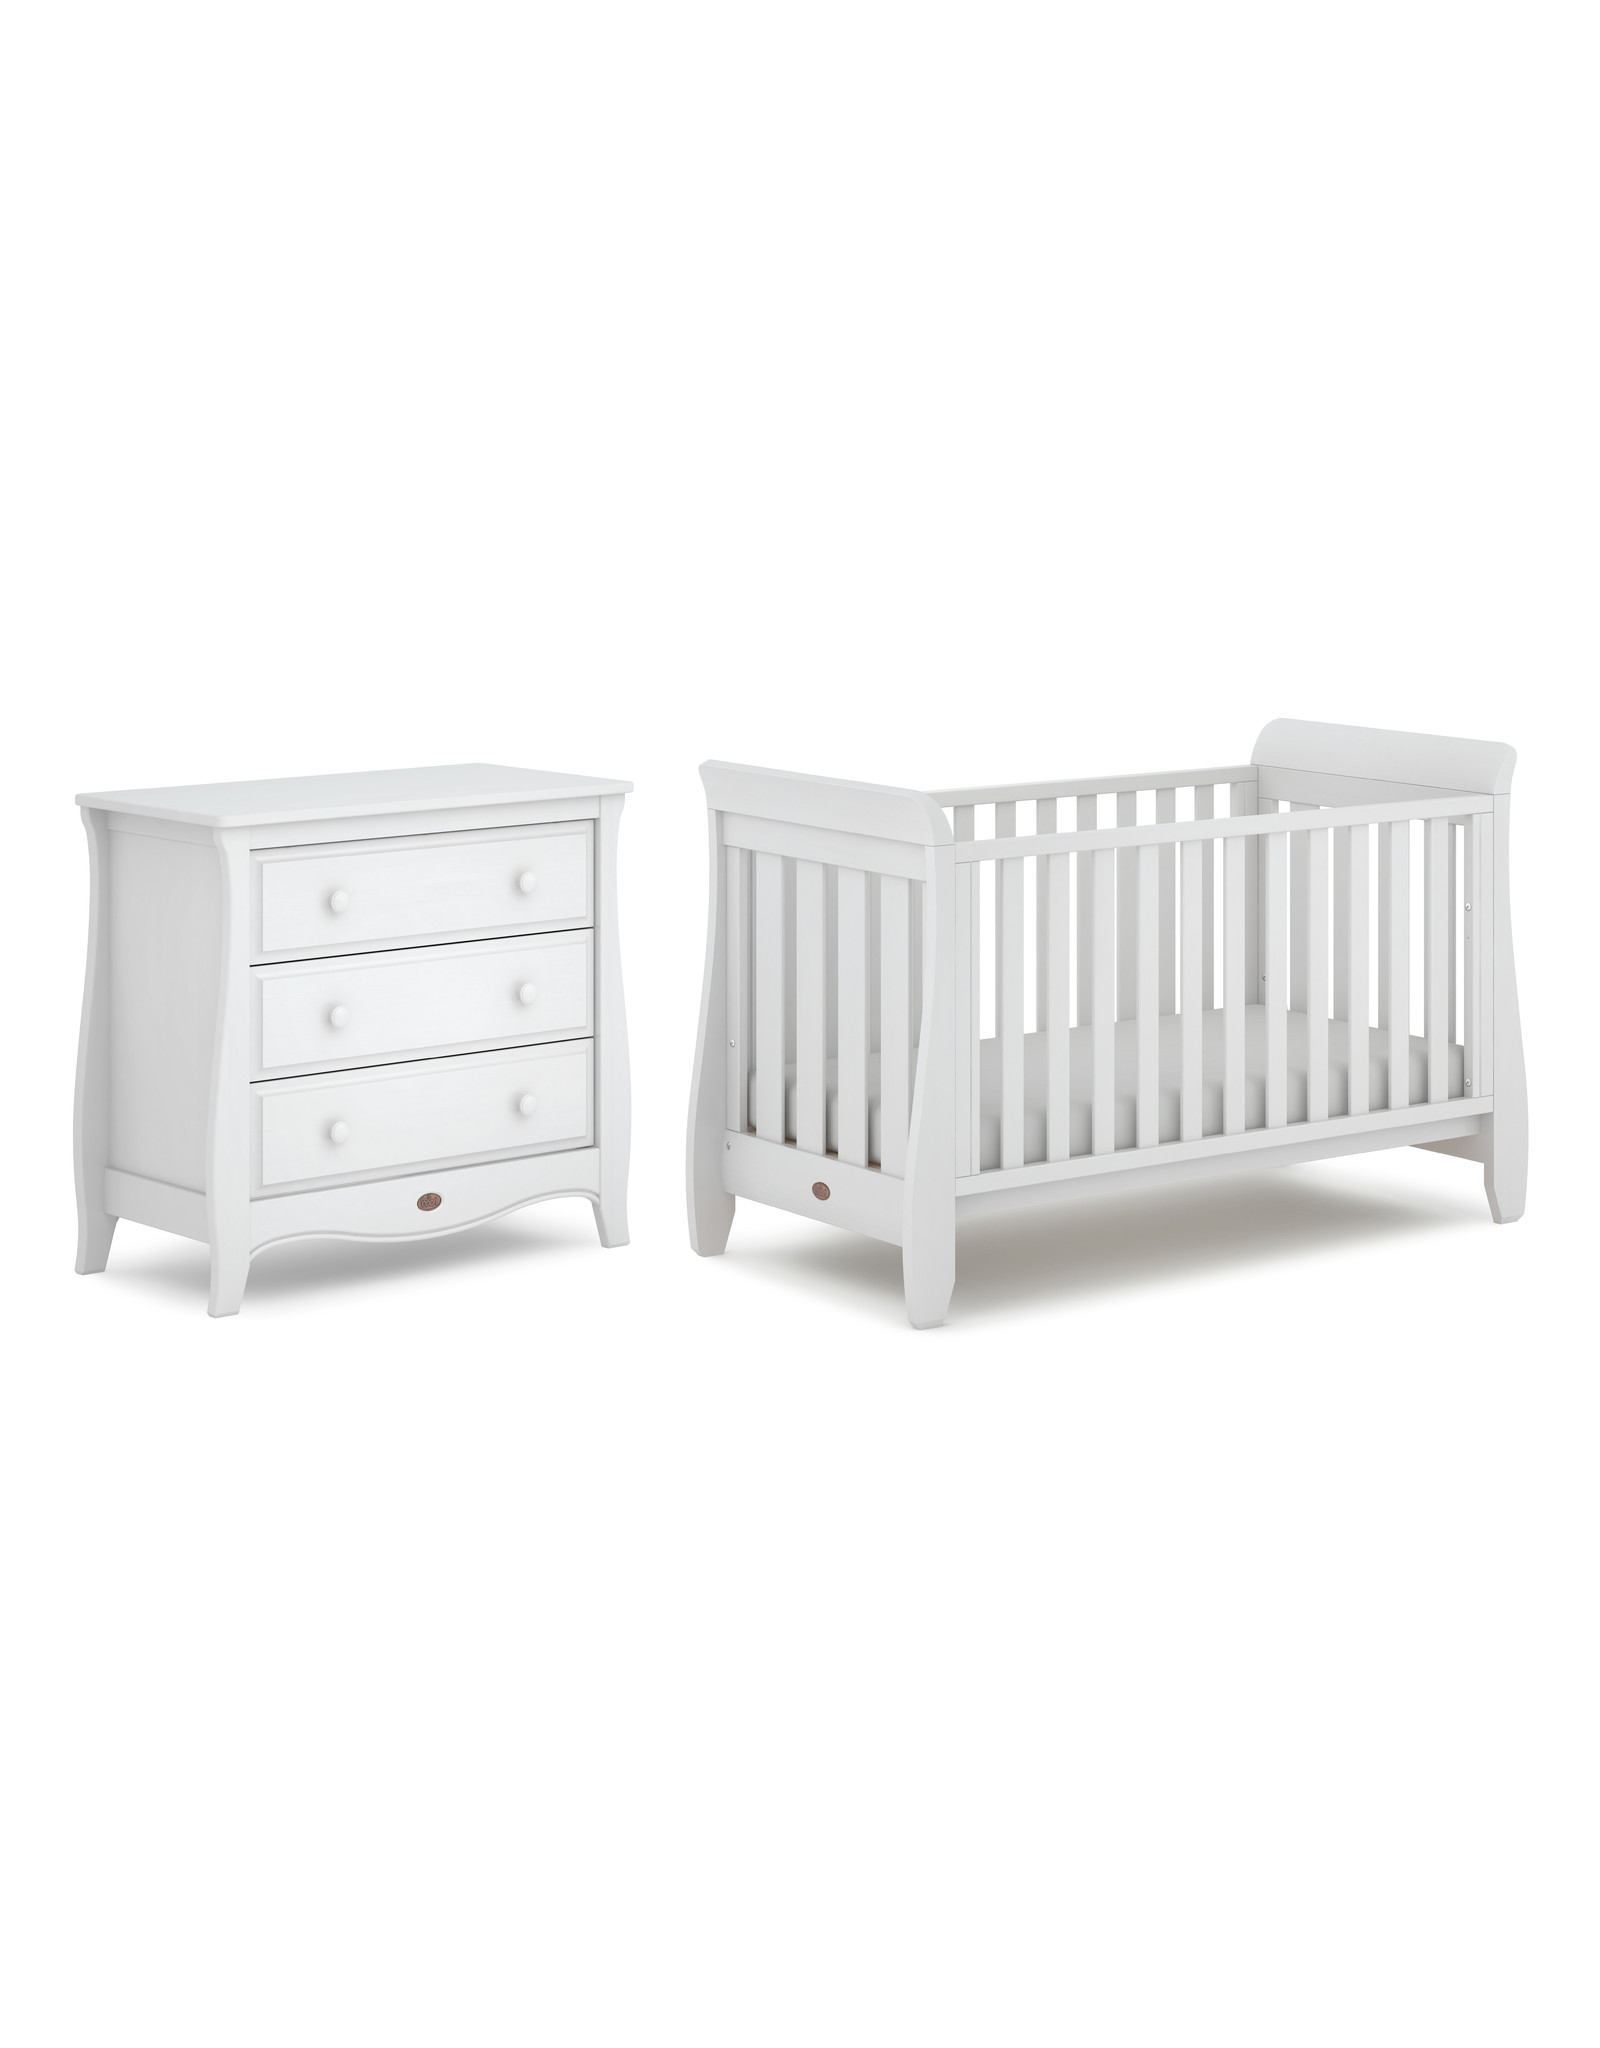 Boori Boori Sleigh Chest of Drawers (Smart Assembly)- White